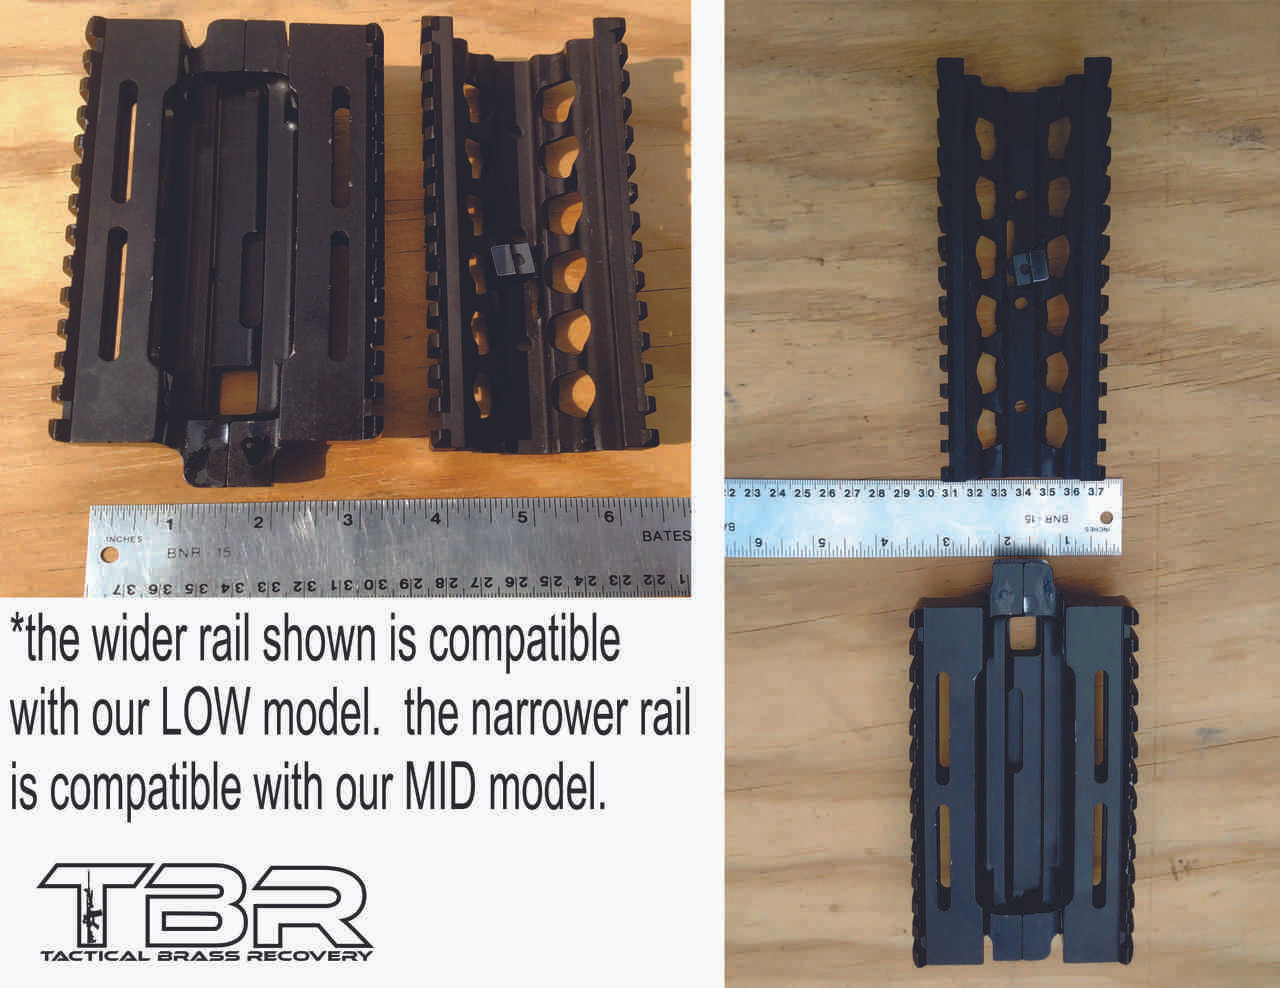 M249 rail adapter (wider and sits lower on receiver), and  lower RAS rail (narrower and sits a bit higher on receiver) shown.